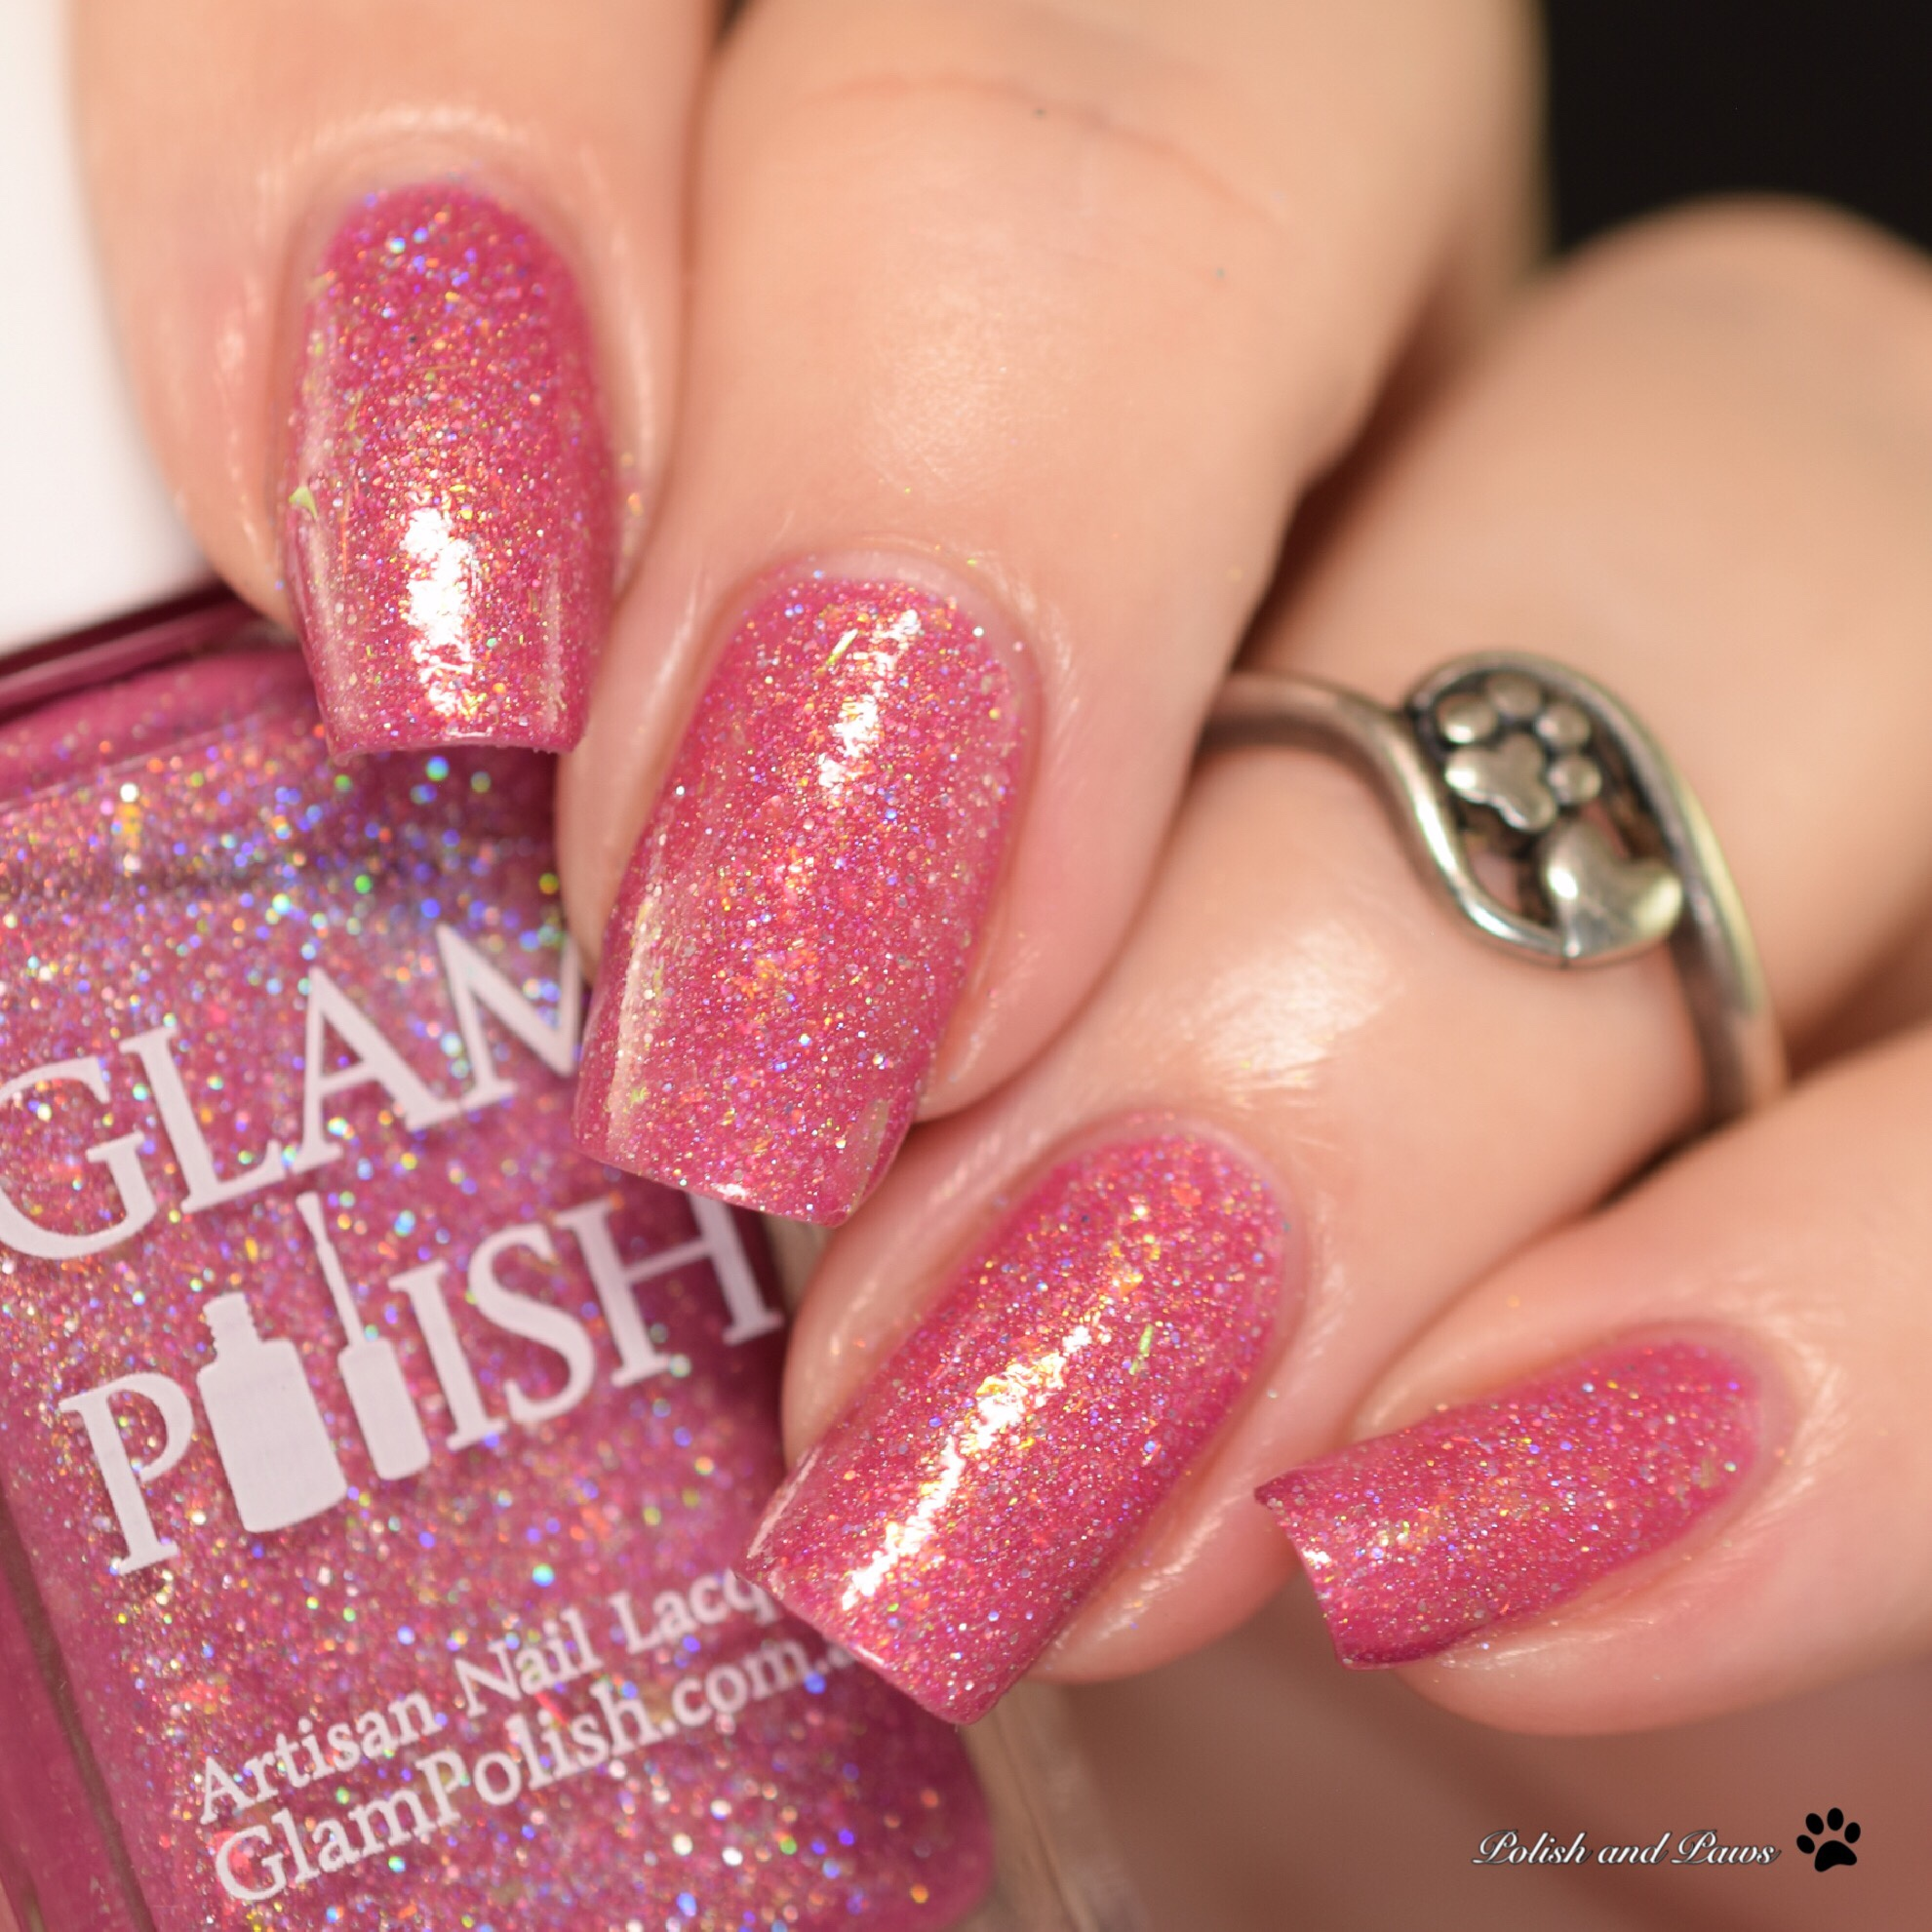 Glam Polish Legally Blonde